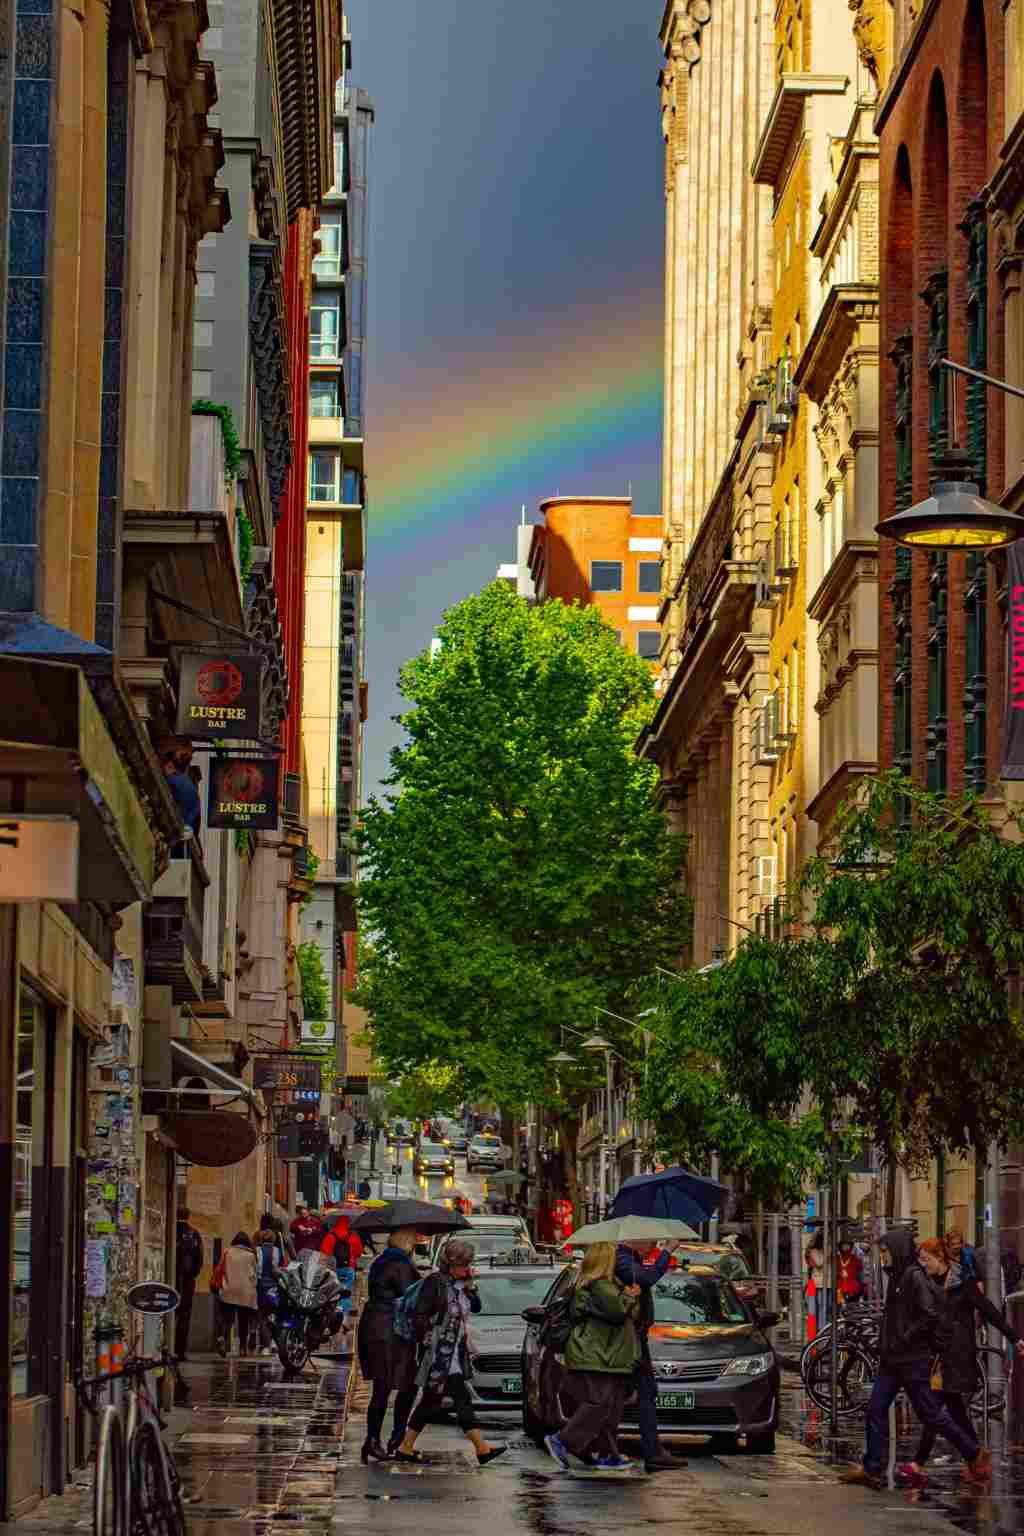 A rainbow in the sky in a city laneway